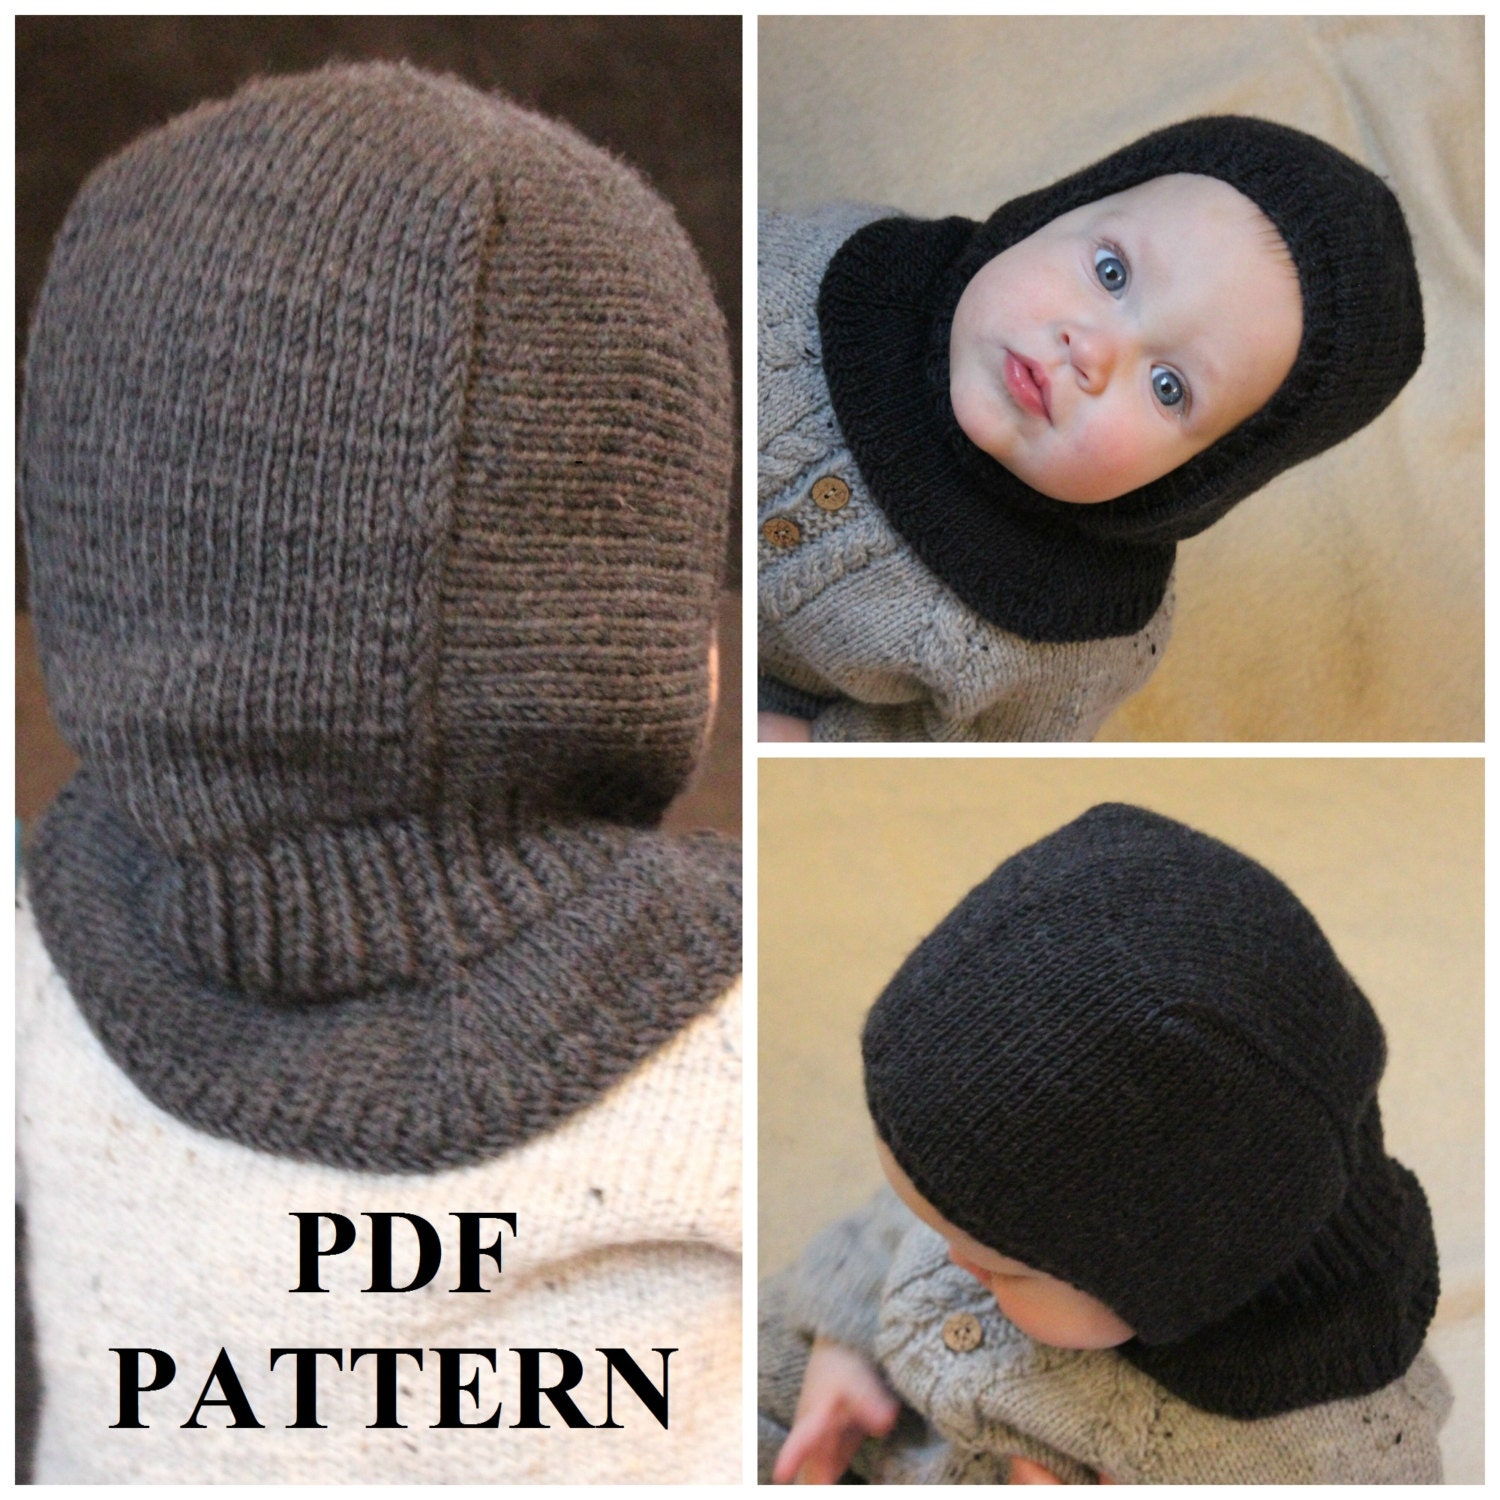 Knitting Pattern Of Baby Balaclava : Knitting PDF pattern Balaclava pattern Balaclava knitting